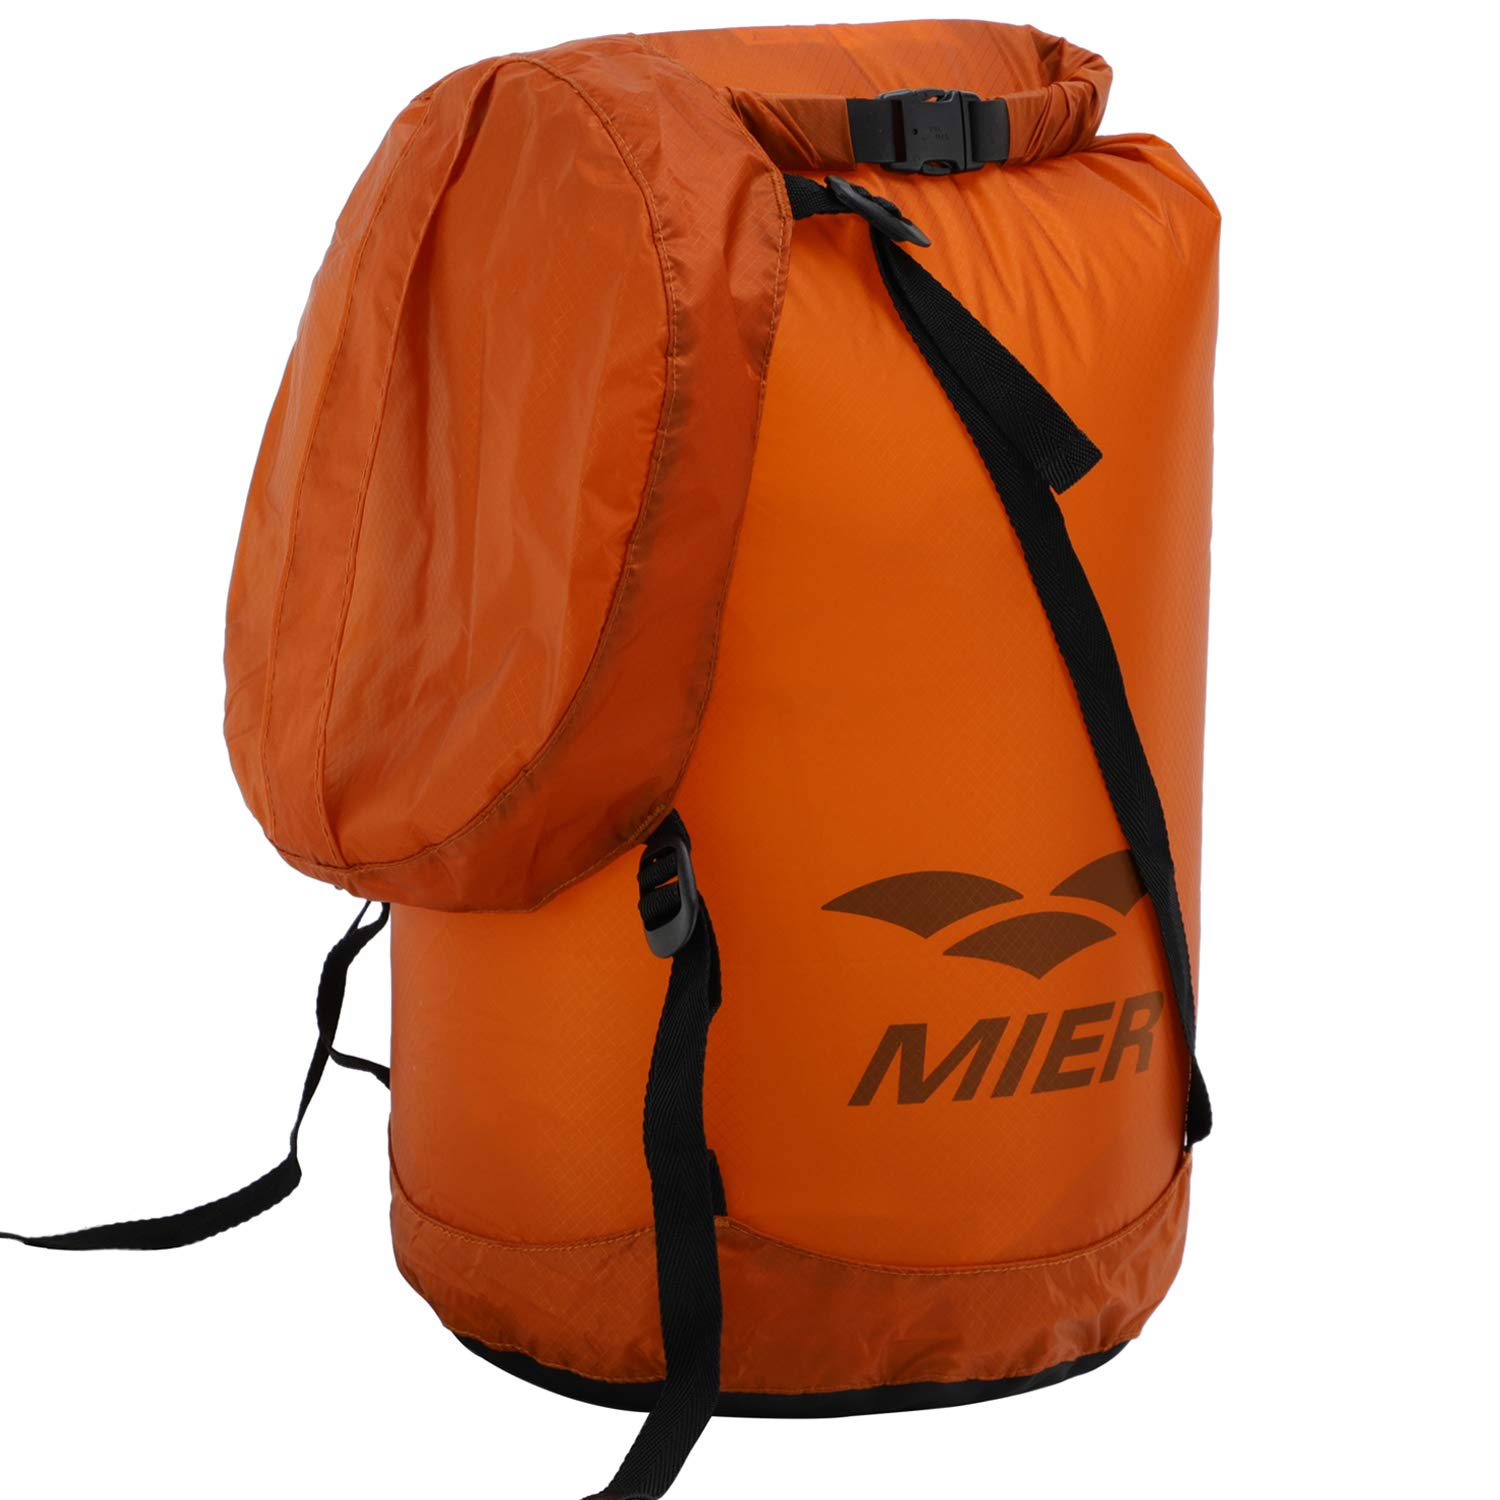 MIER Waterproof Compression Stuff Sack Ultralight Cordura Nylon Dry Bag for Backpacking, Kayaking, Camping, Outdoor Sports, 20L, Orange by MIER